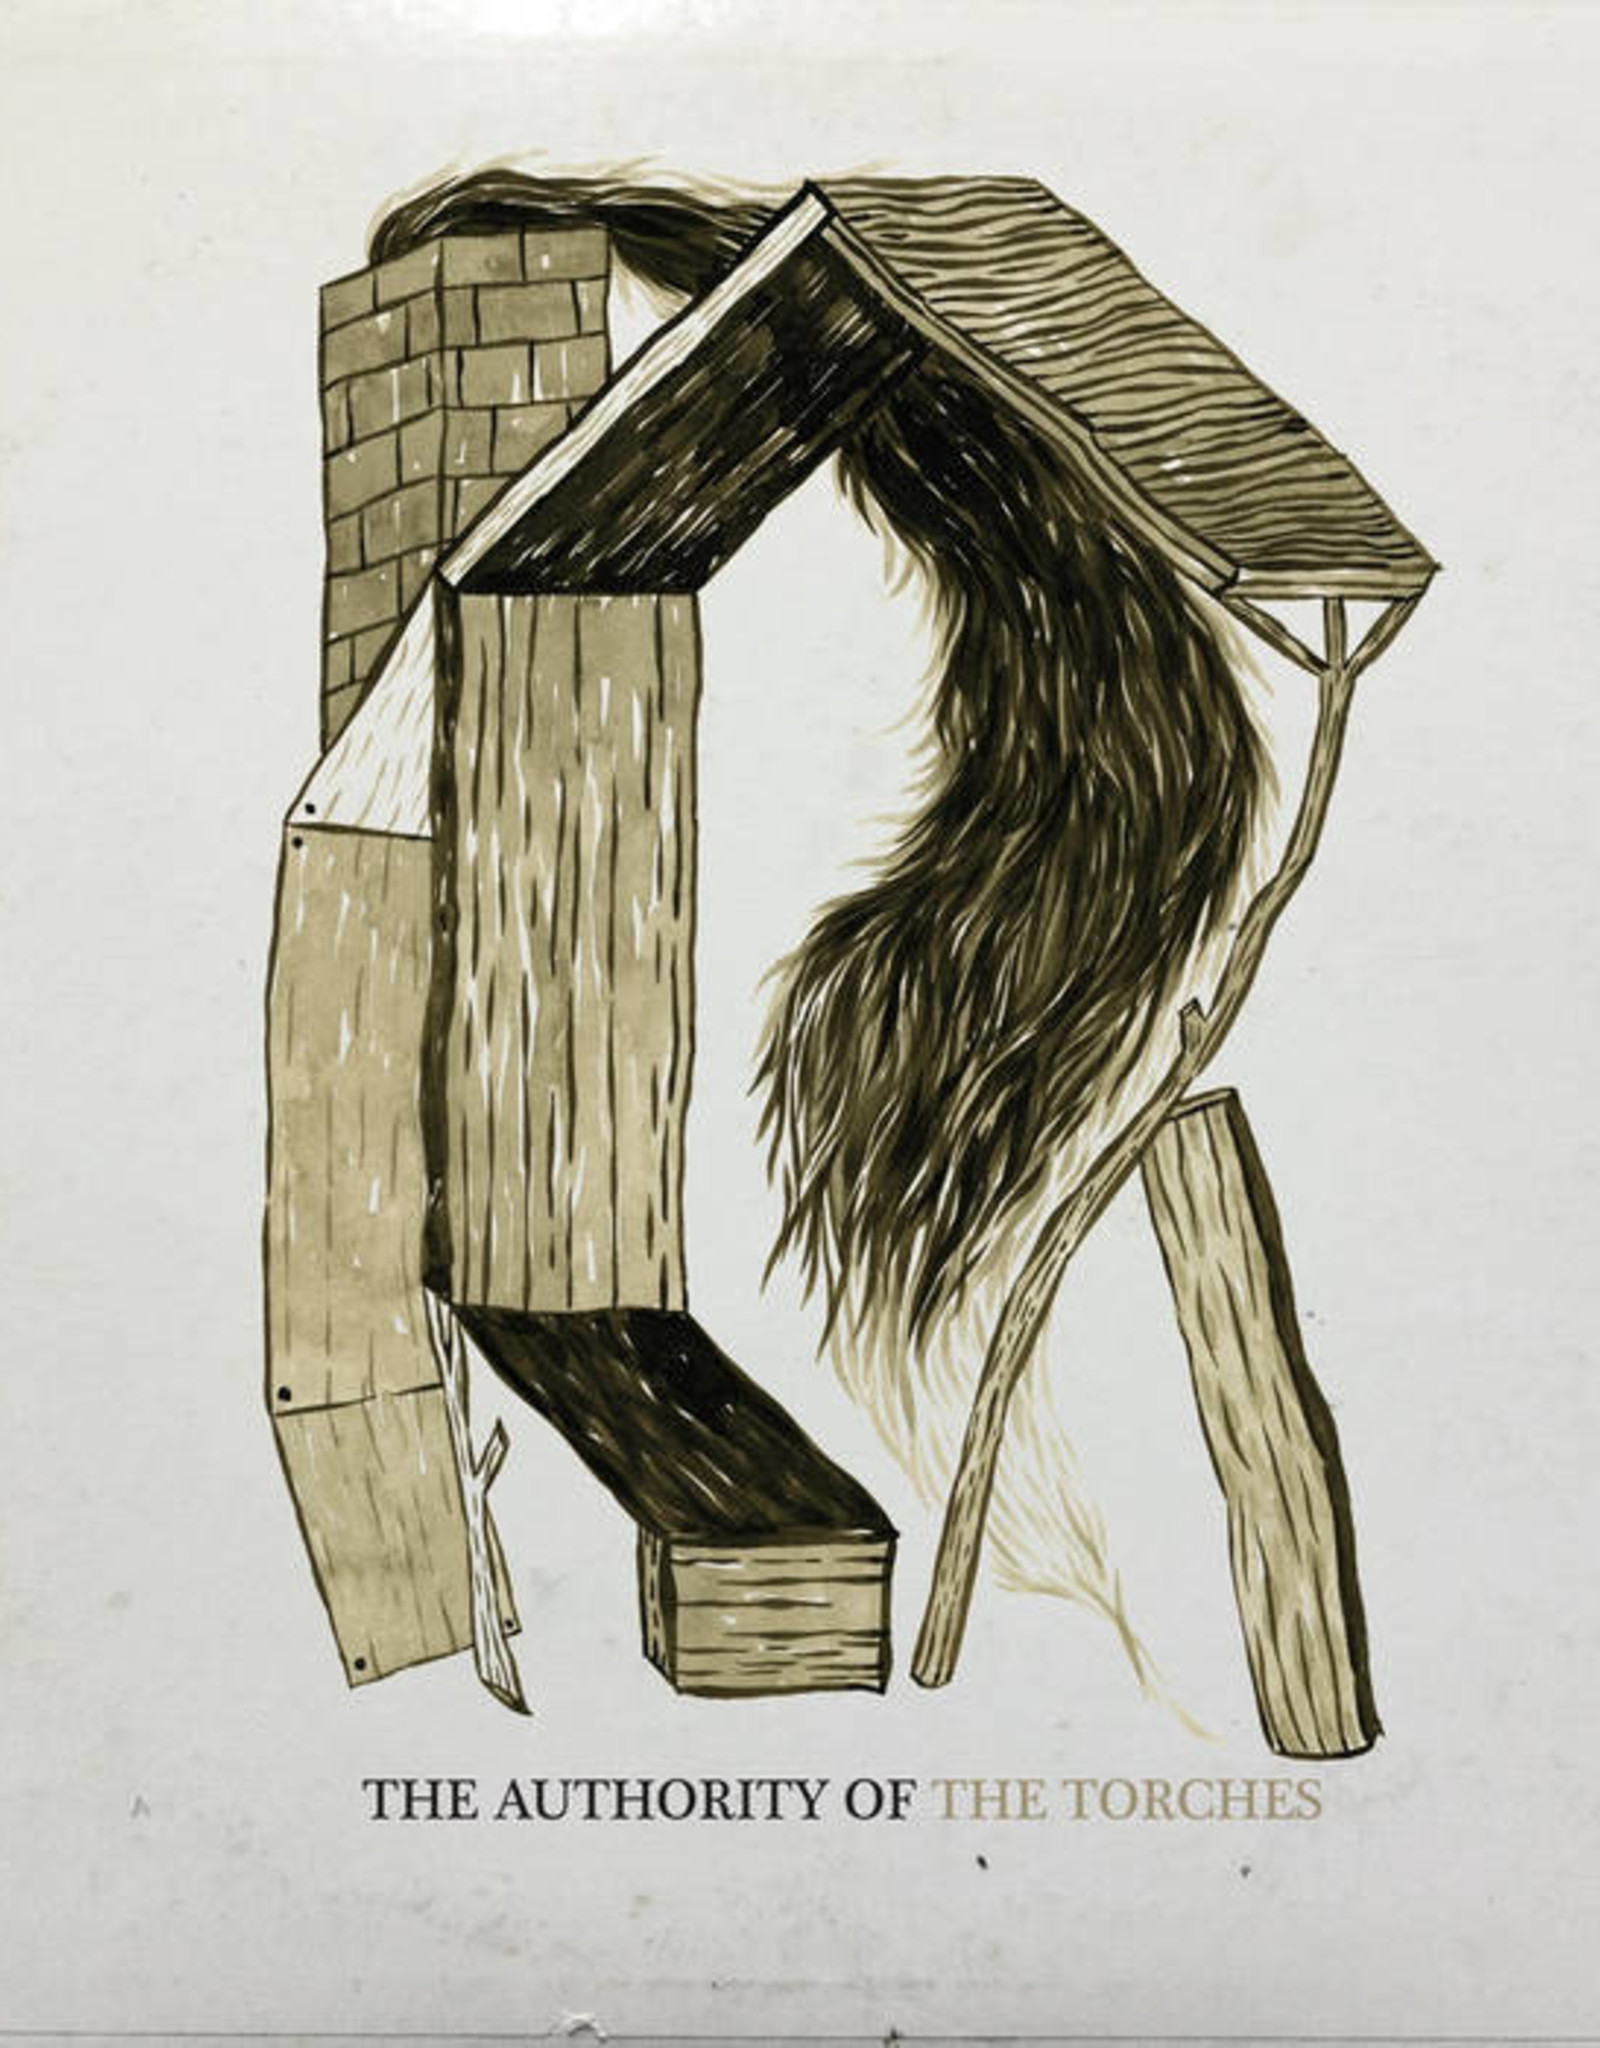 The Torches - The Authority of the Torches